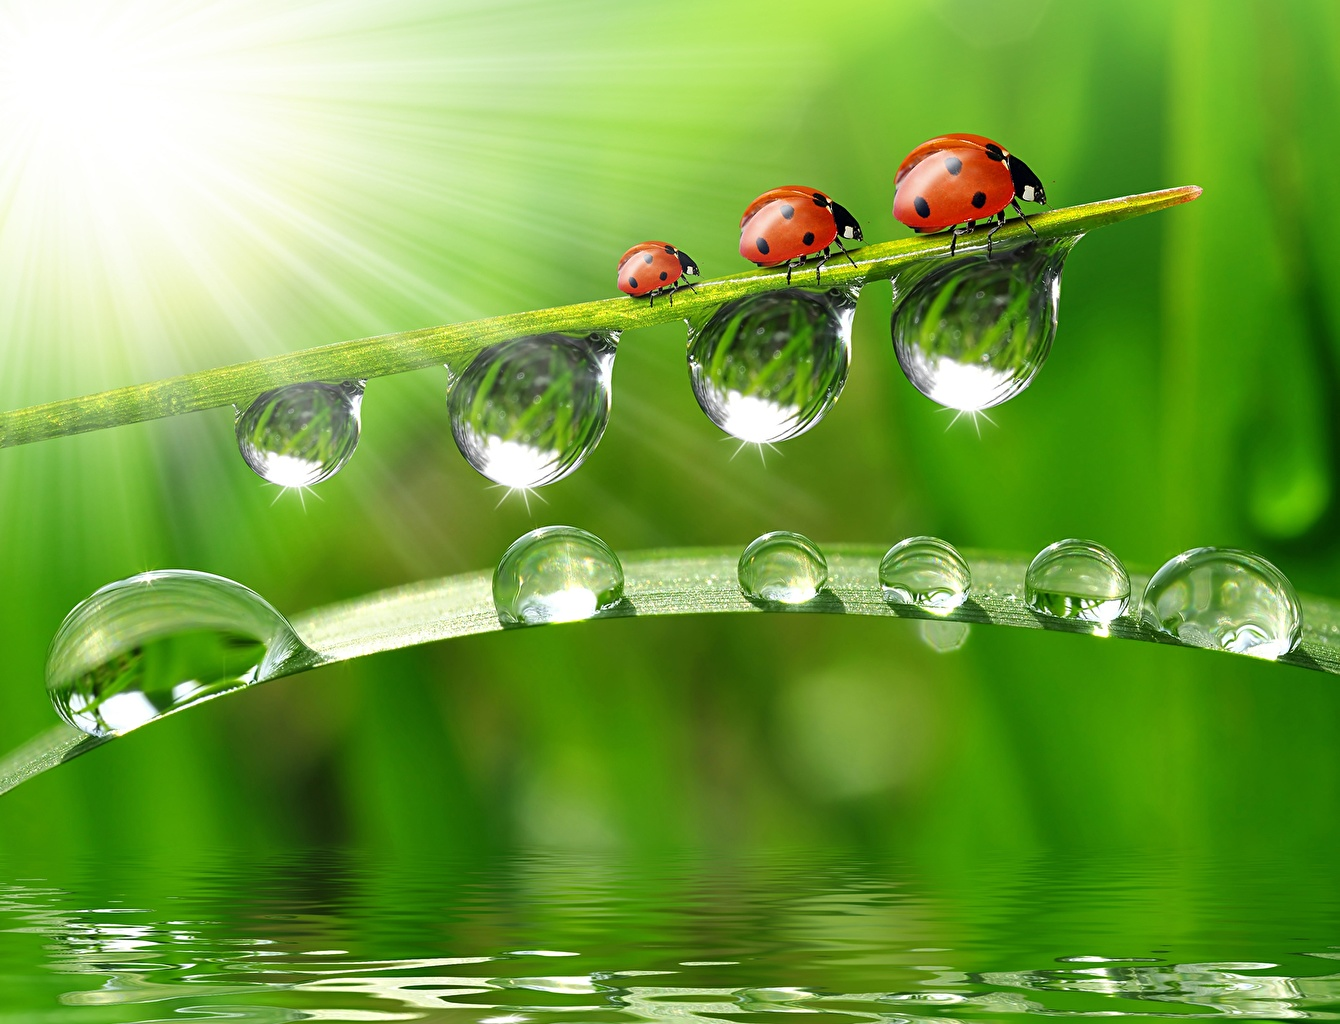 Wallpaper Ladybird Insects Drops Grass Three 3 Animals Closeup 1340x1024